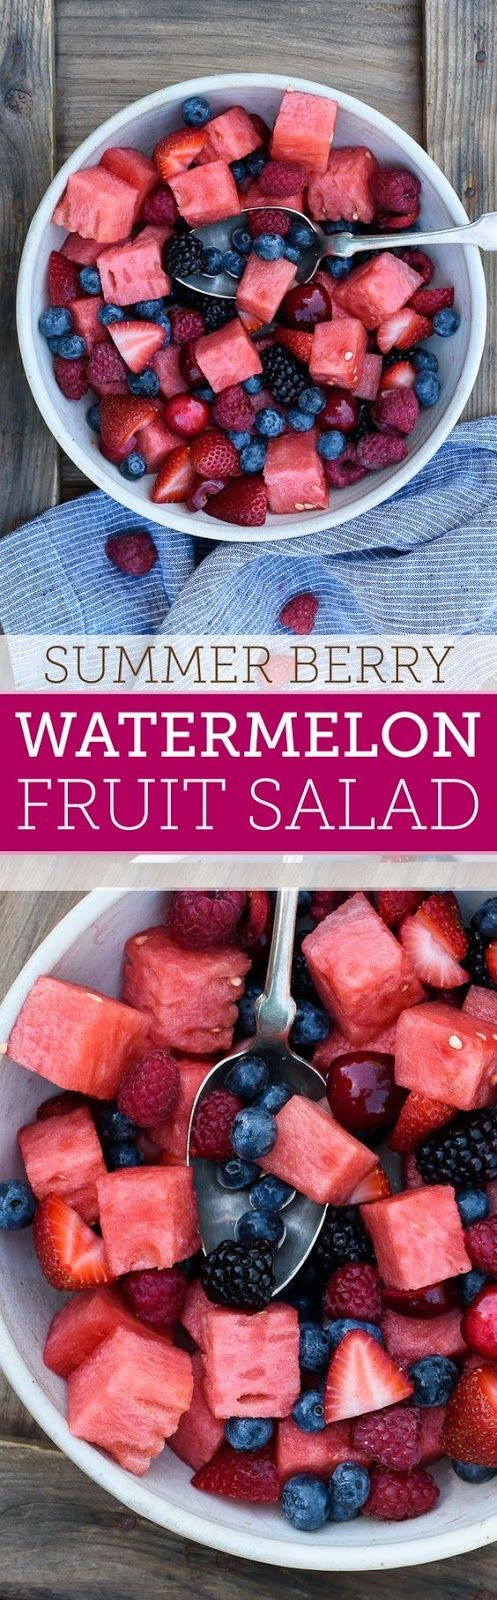 Berry Watermelon Fruit Salad | World Recipe Collection